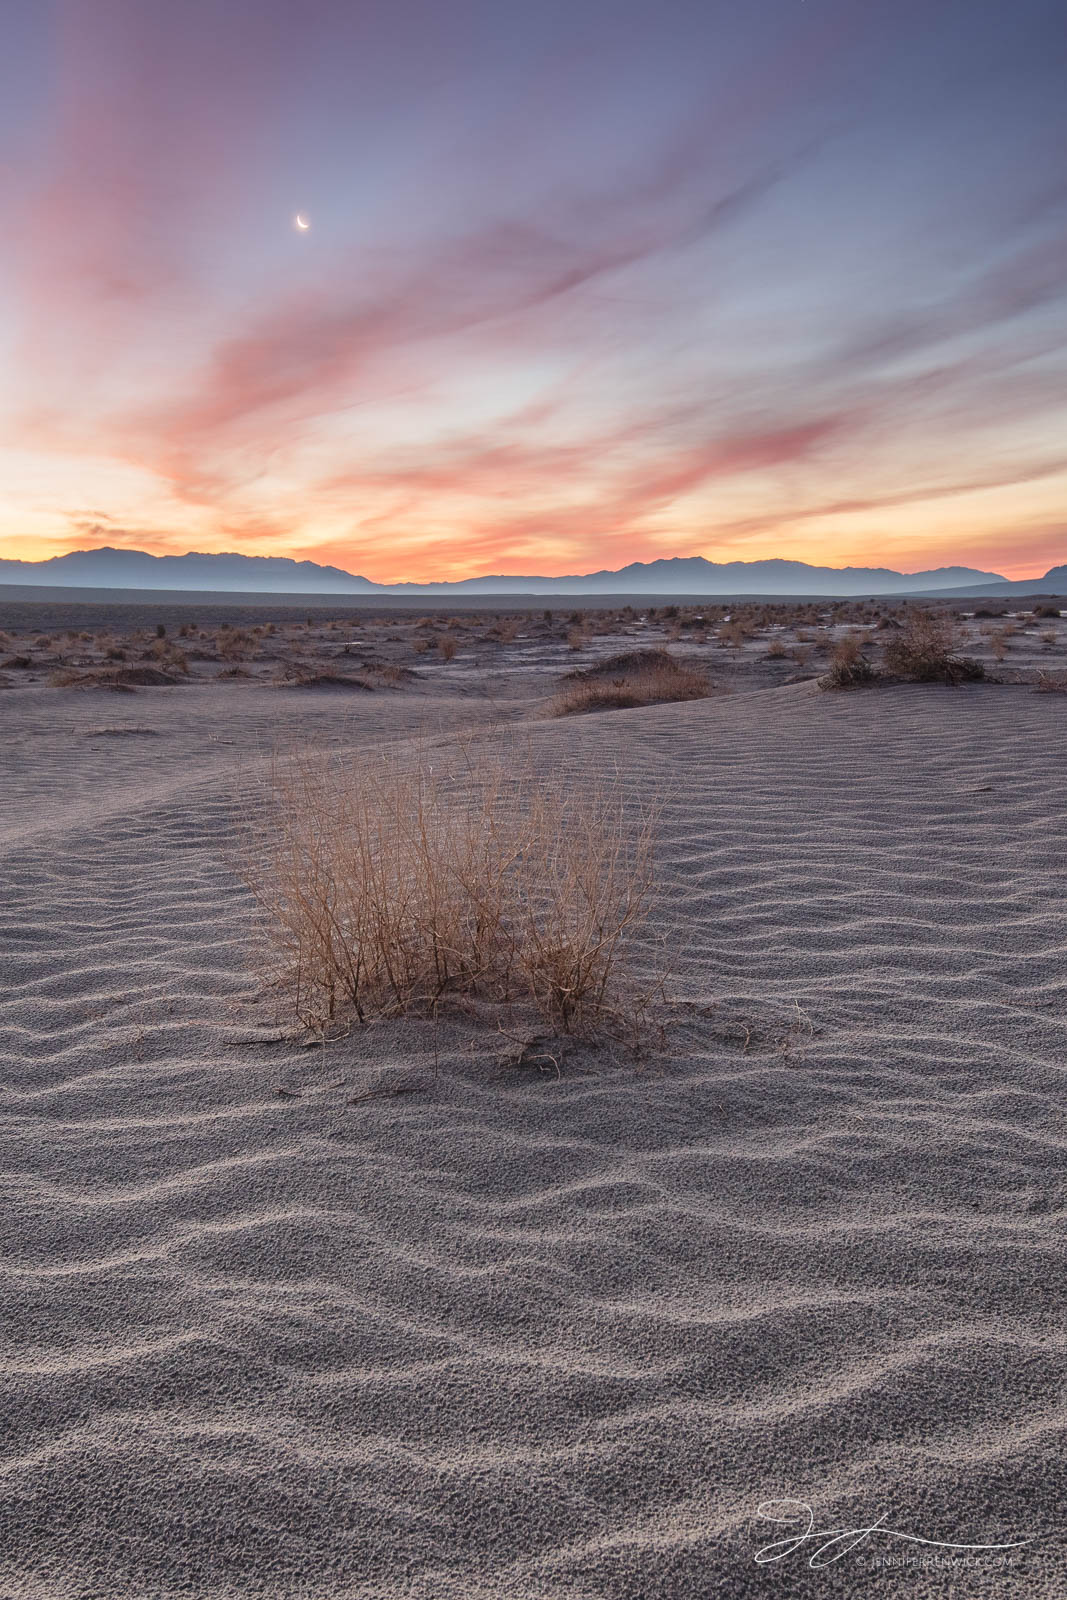 The moon rises over an early morning scene in Death Valley National Park.